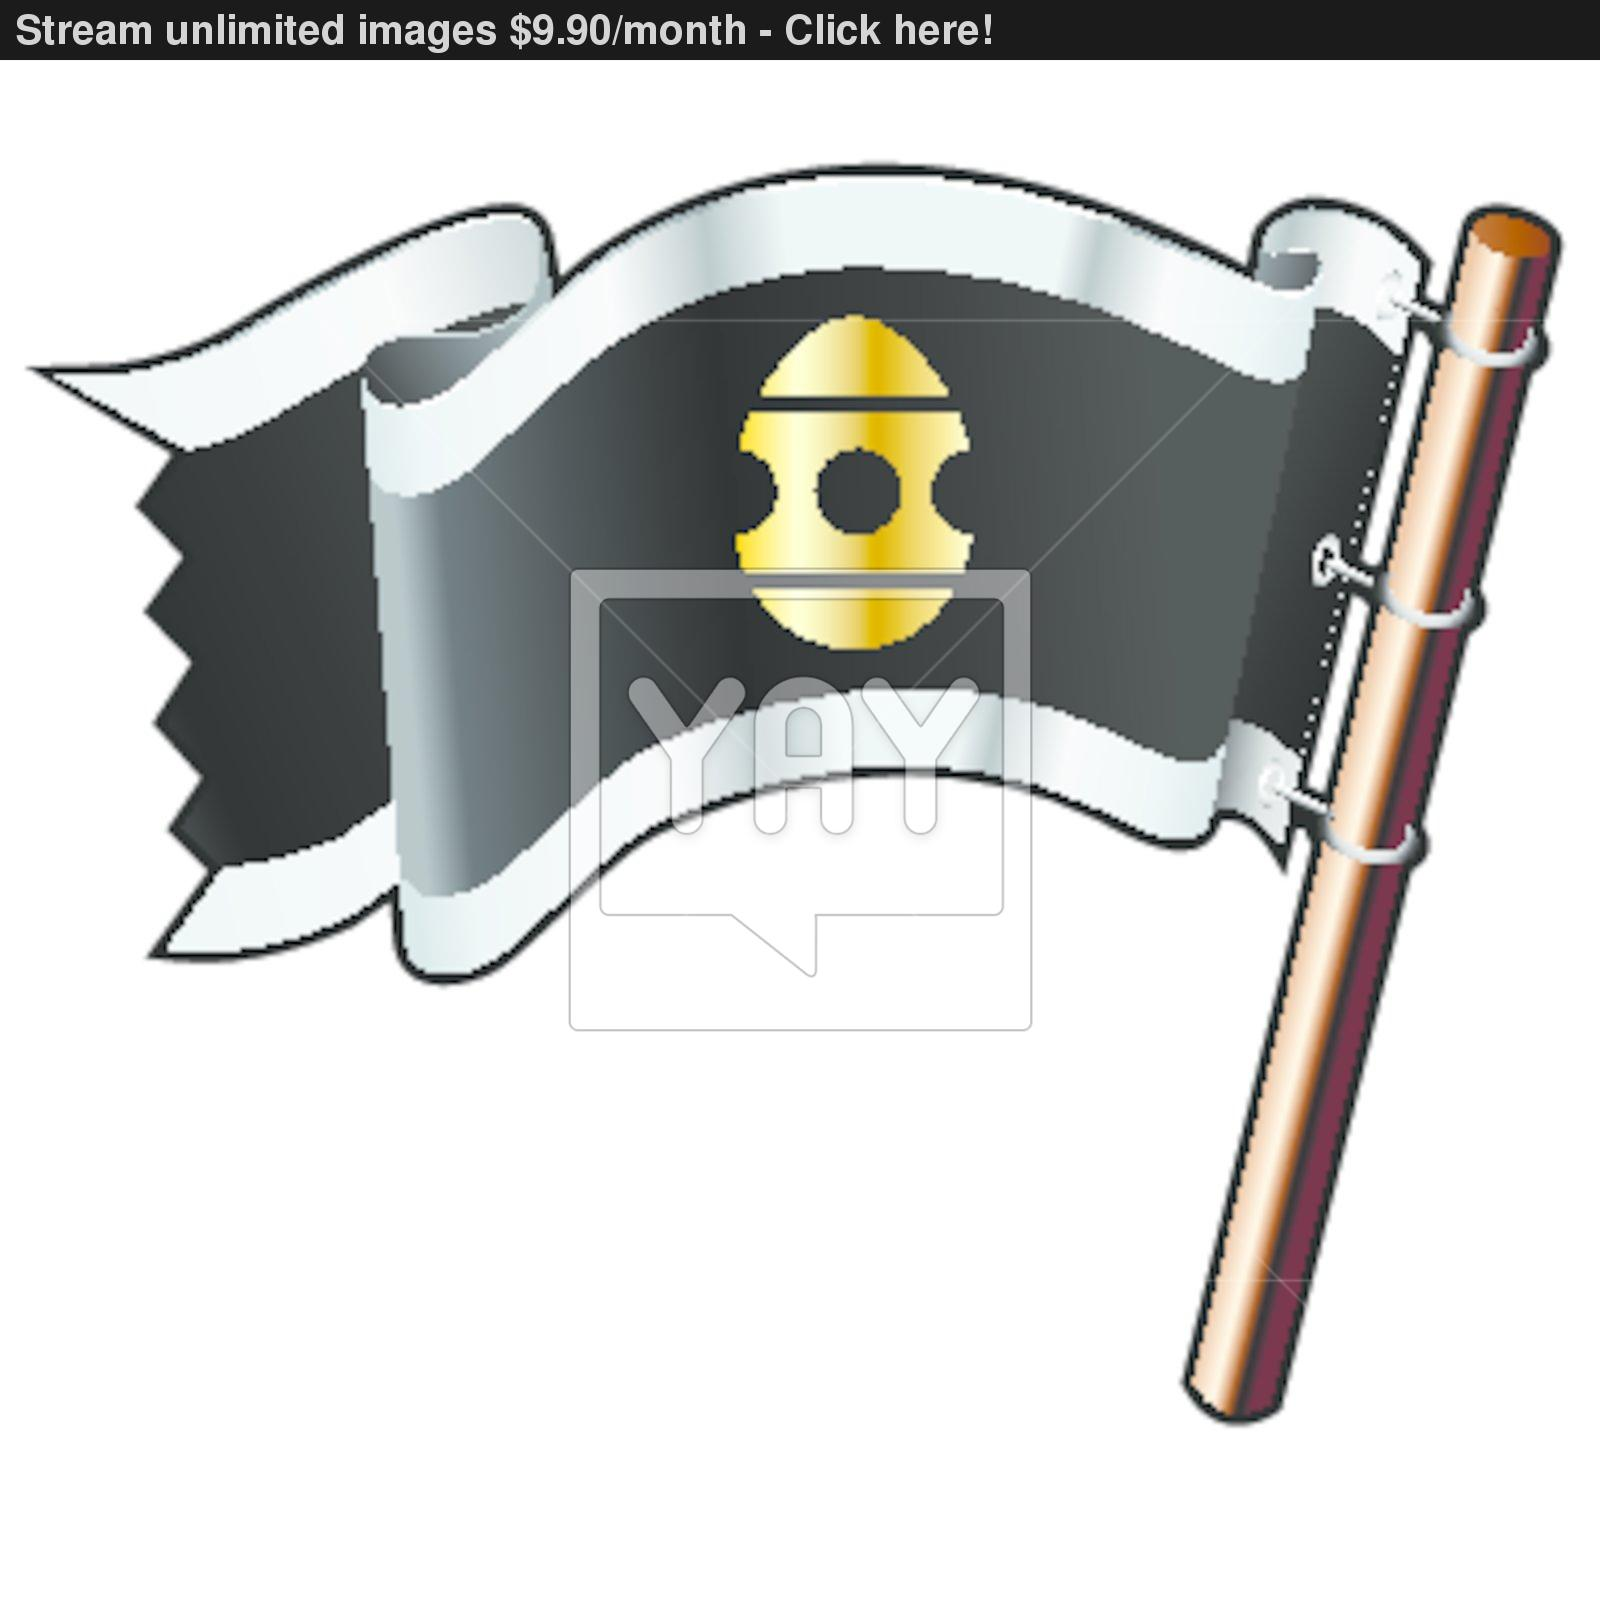 Pirate easter egg clipart jpg library Easter egg pirate flag vector | YayImages.com jpg library